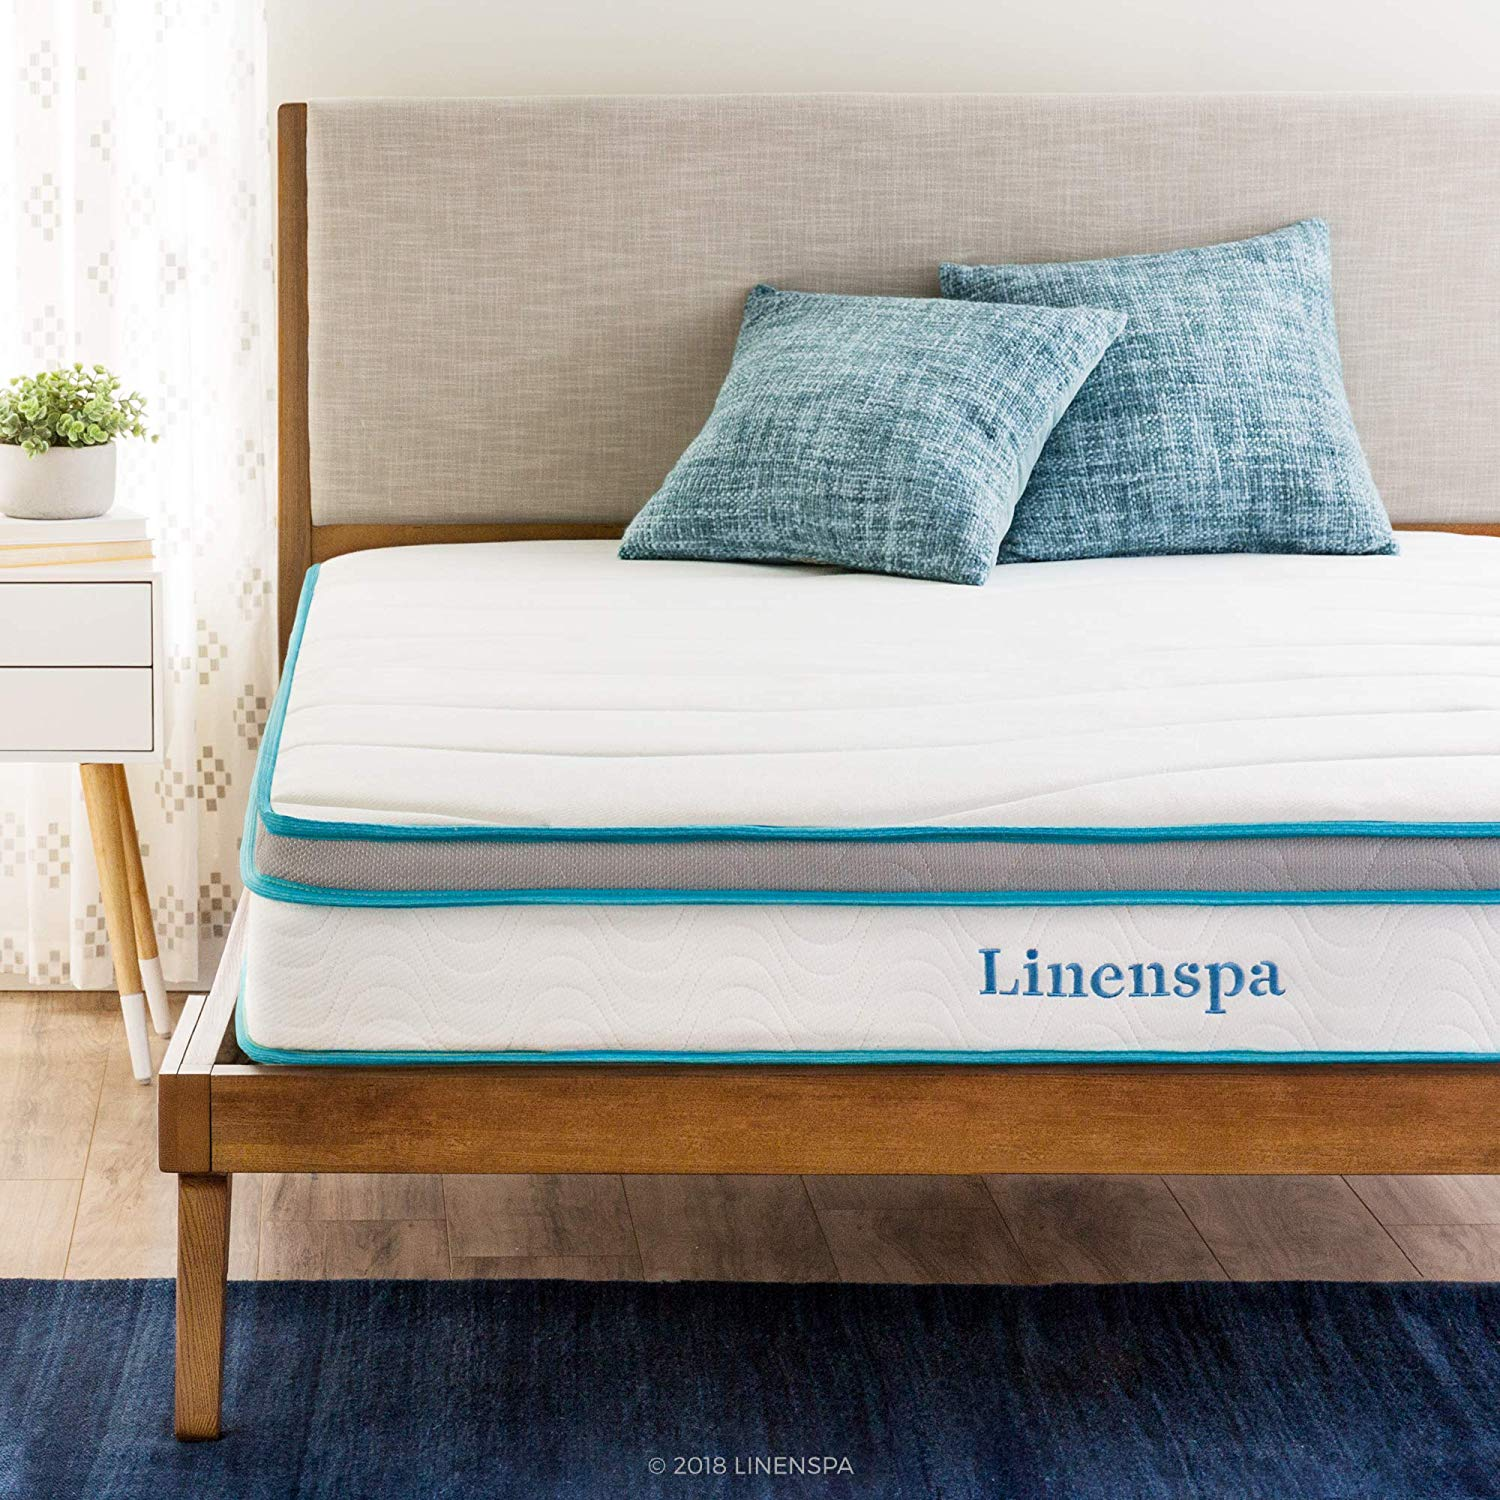 Linenspa Best Twin Mattress Review by www.snoremagazine.com